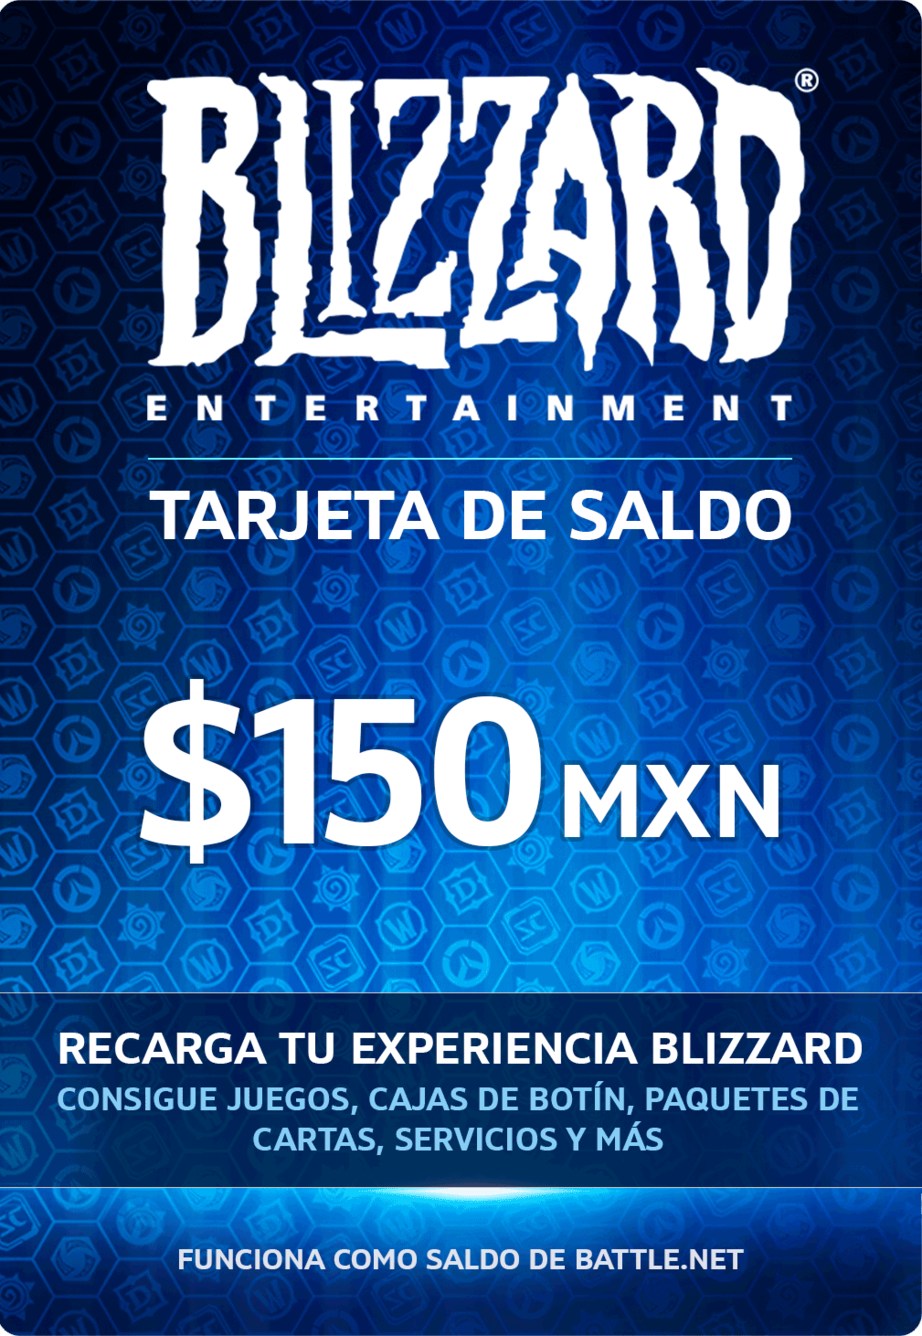 Saldo digital Blizzard $150 MXN